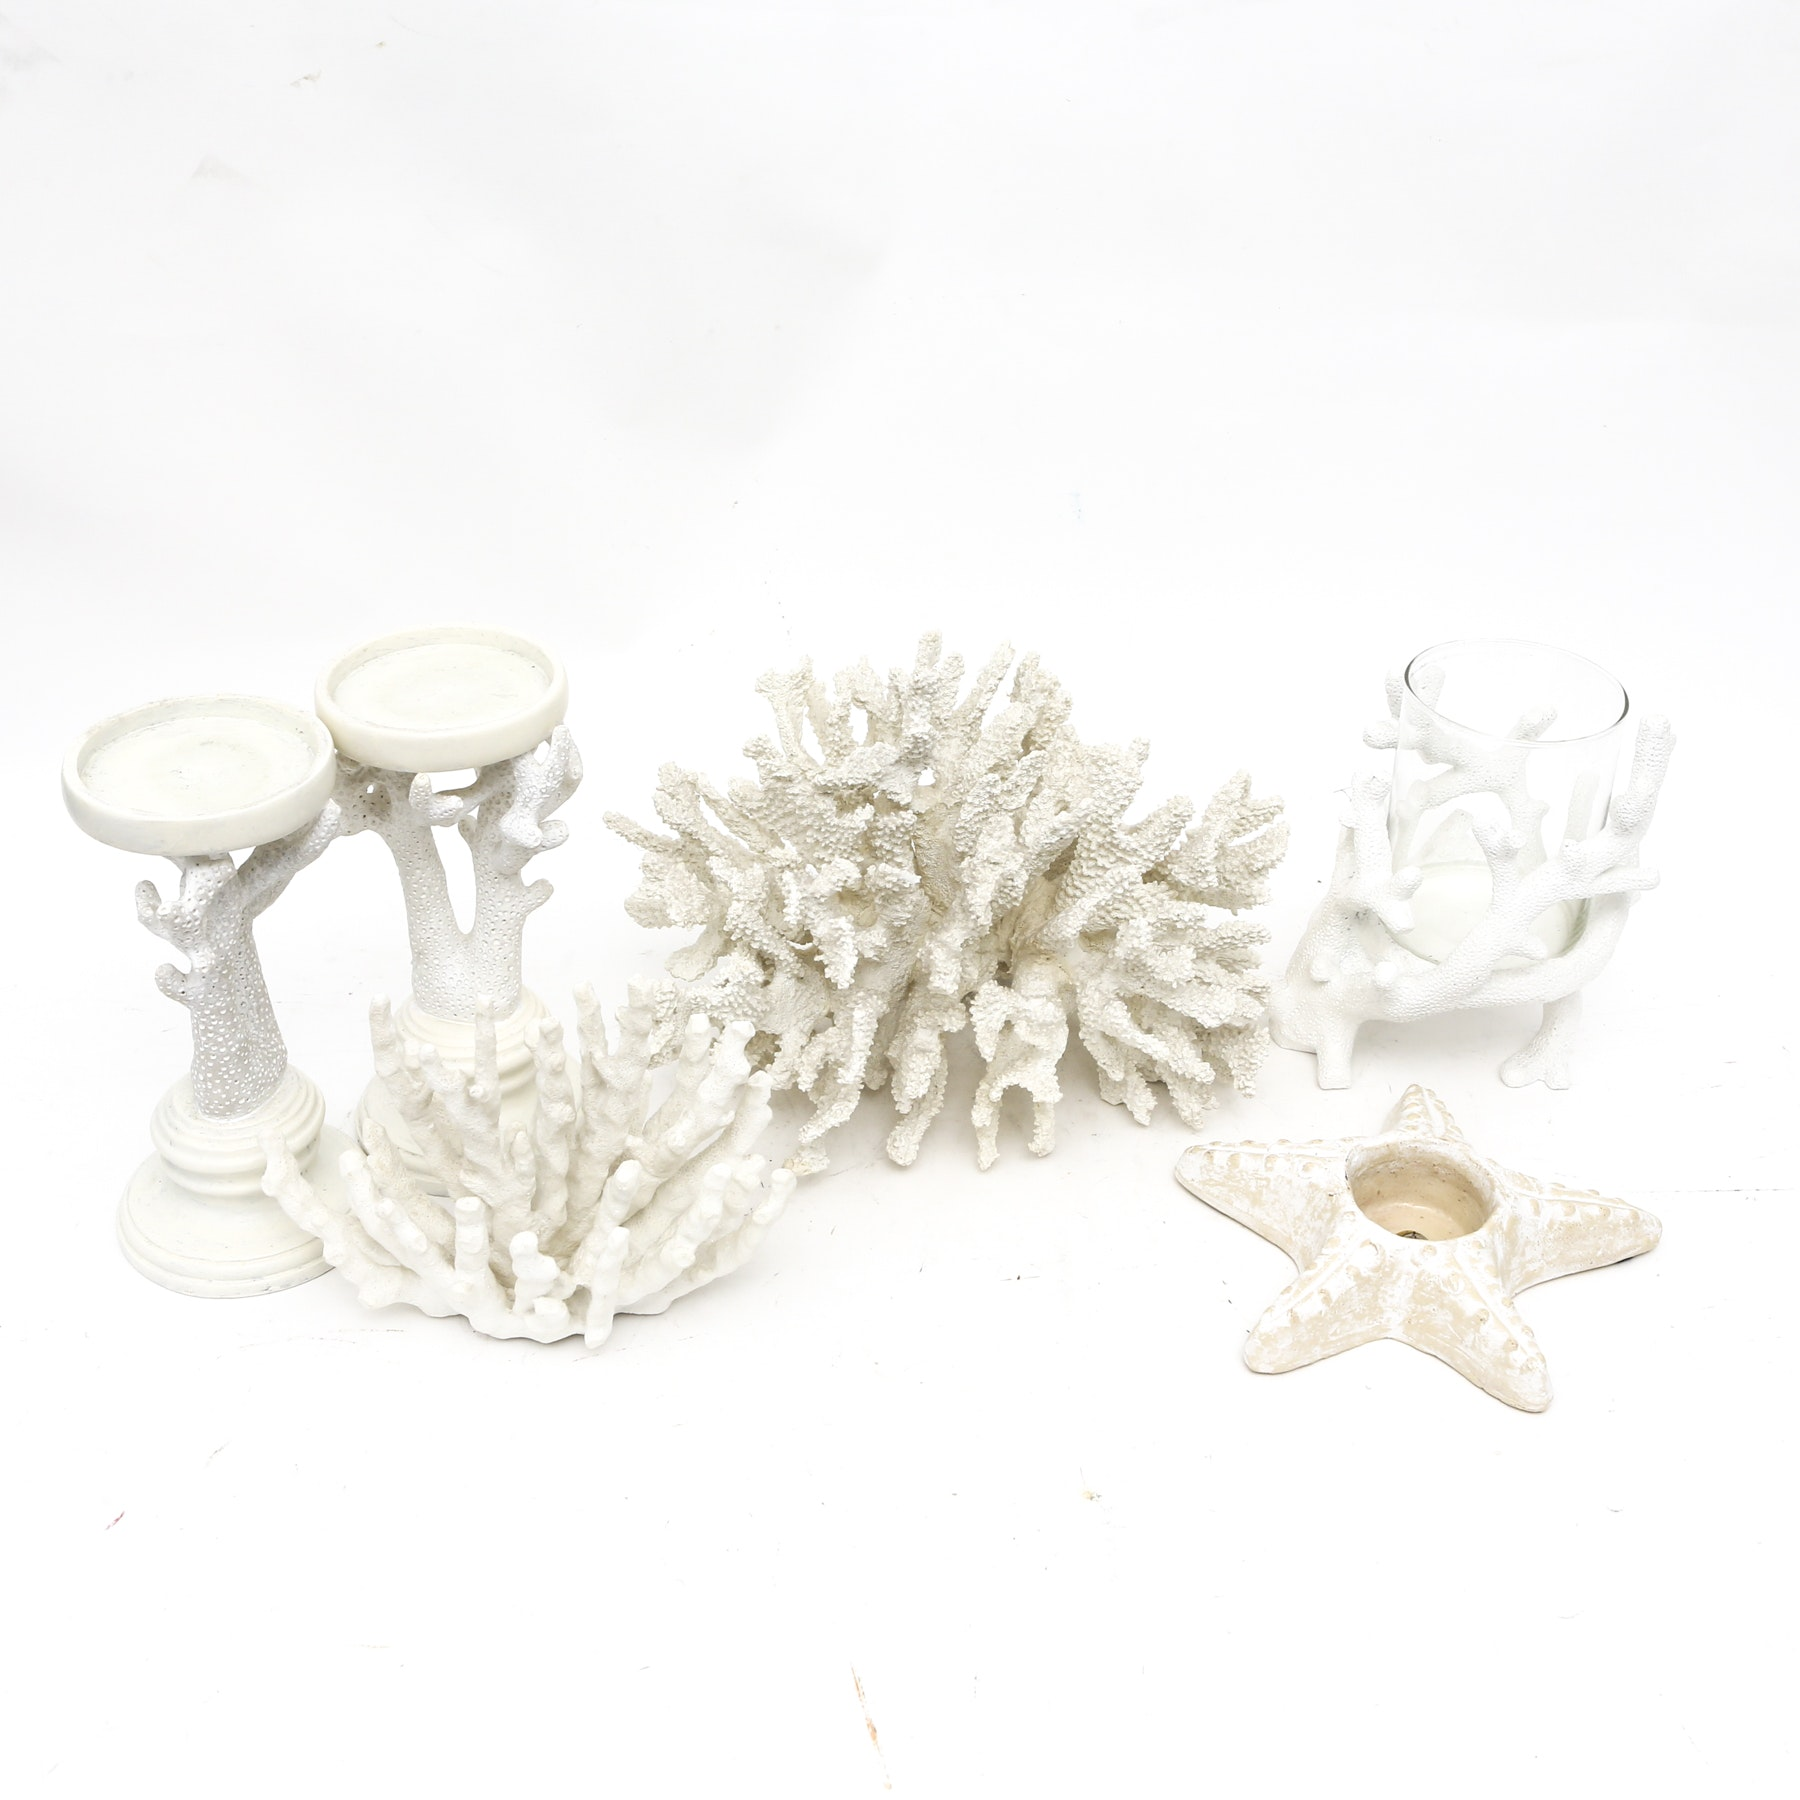 Nautical Candleholders and Decor